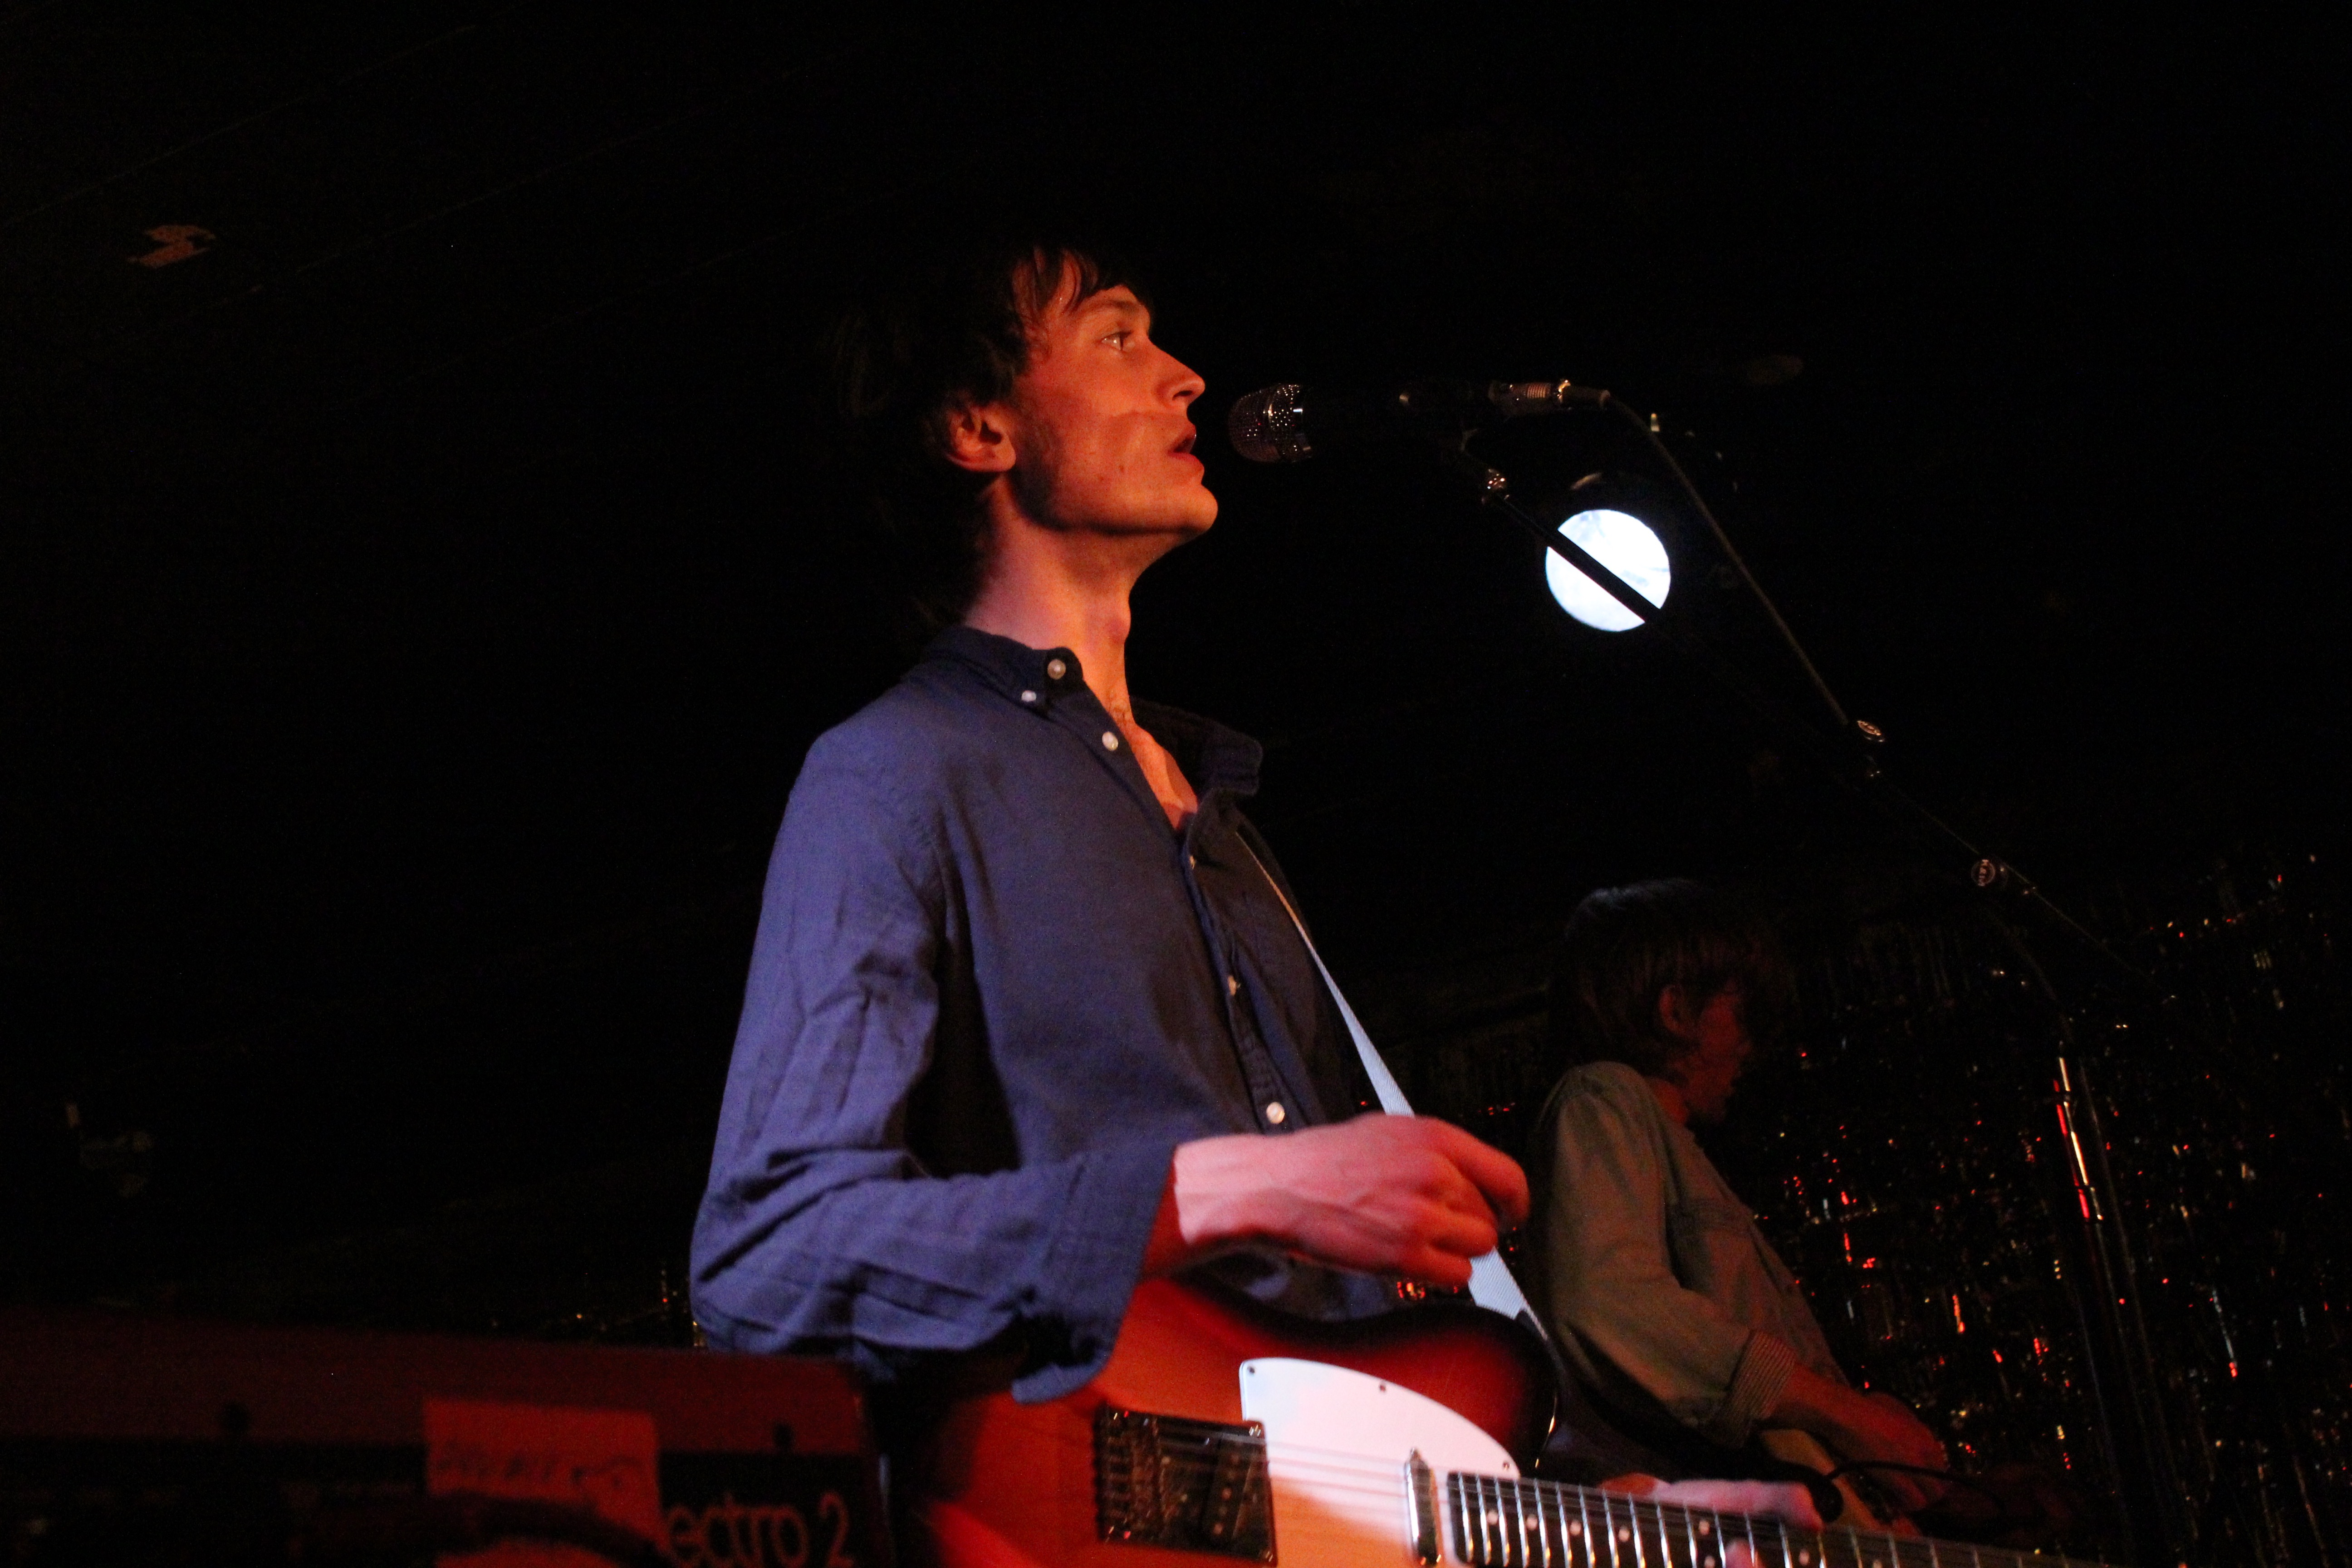 Review of the Ought October 29th show at the Horseshoe Tavern in Toronto,